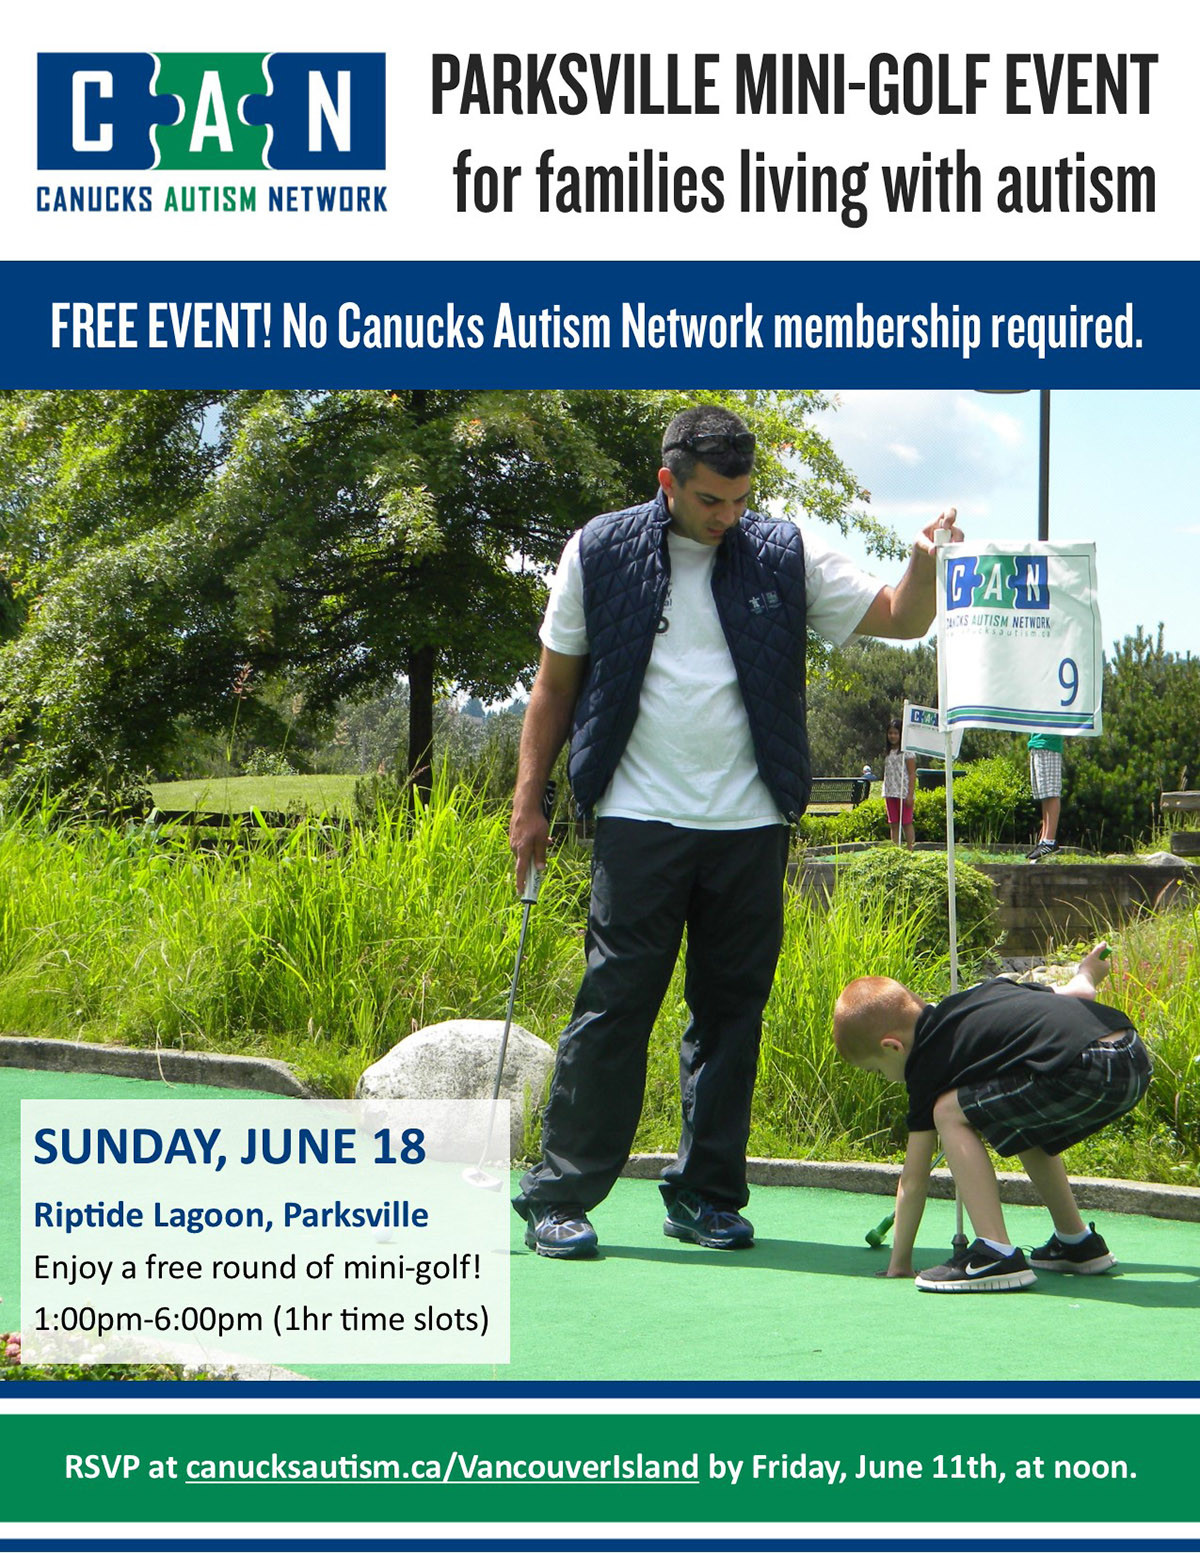 Parksville Mini Golf: for families living with autism